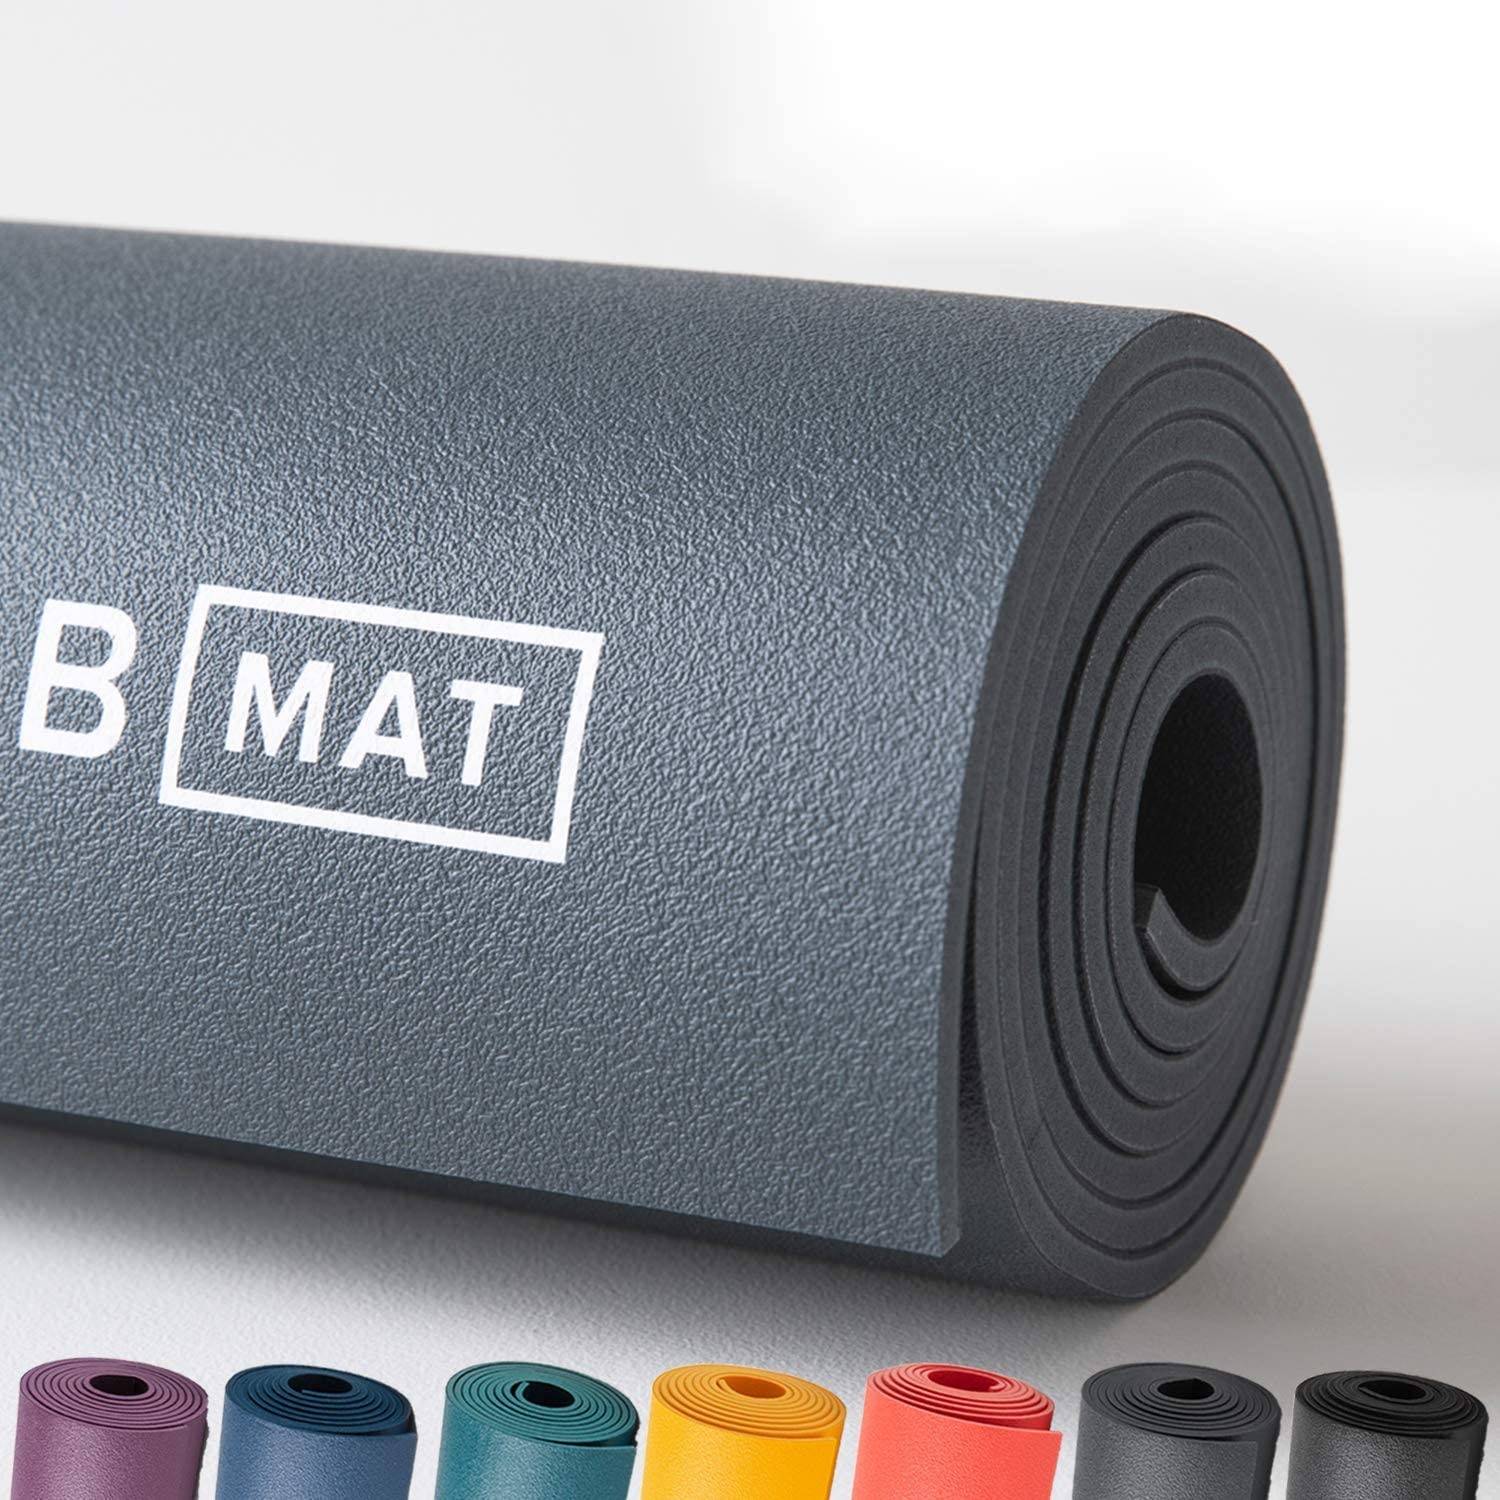 Amazon Com B Yoga Strong 6mm B Mat 100 Rubber High Performance Super Grip Non Slip Oekotex Certified For Yoga Pilates Workout And Floor Exercises 71 Or 85 Sports Outdoors